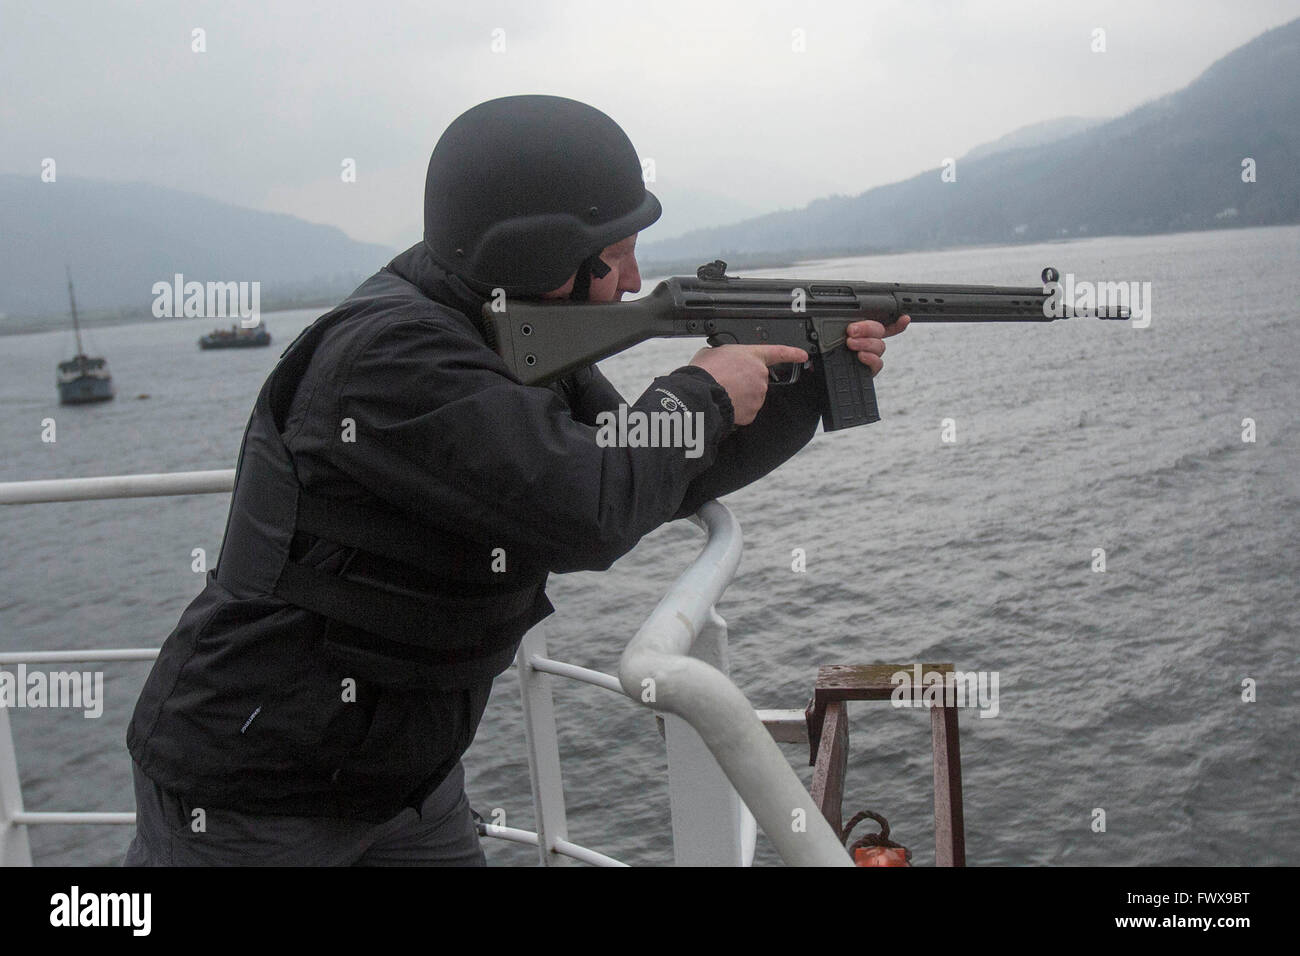 Anti piracy training at the Holy Loch in Dunoon, Scotland - Stock Image